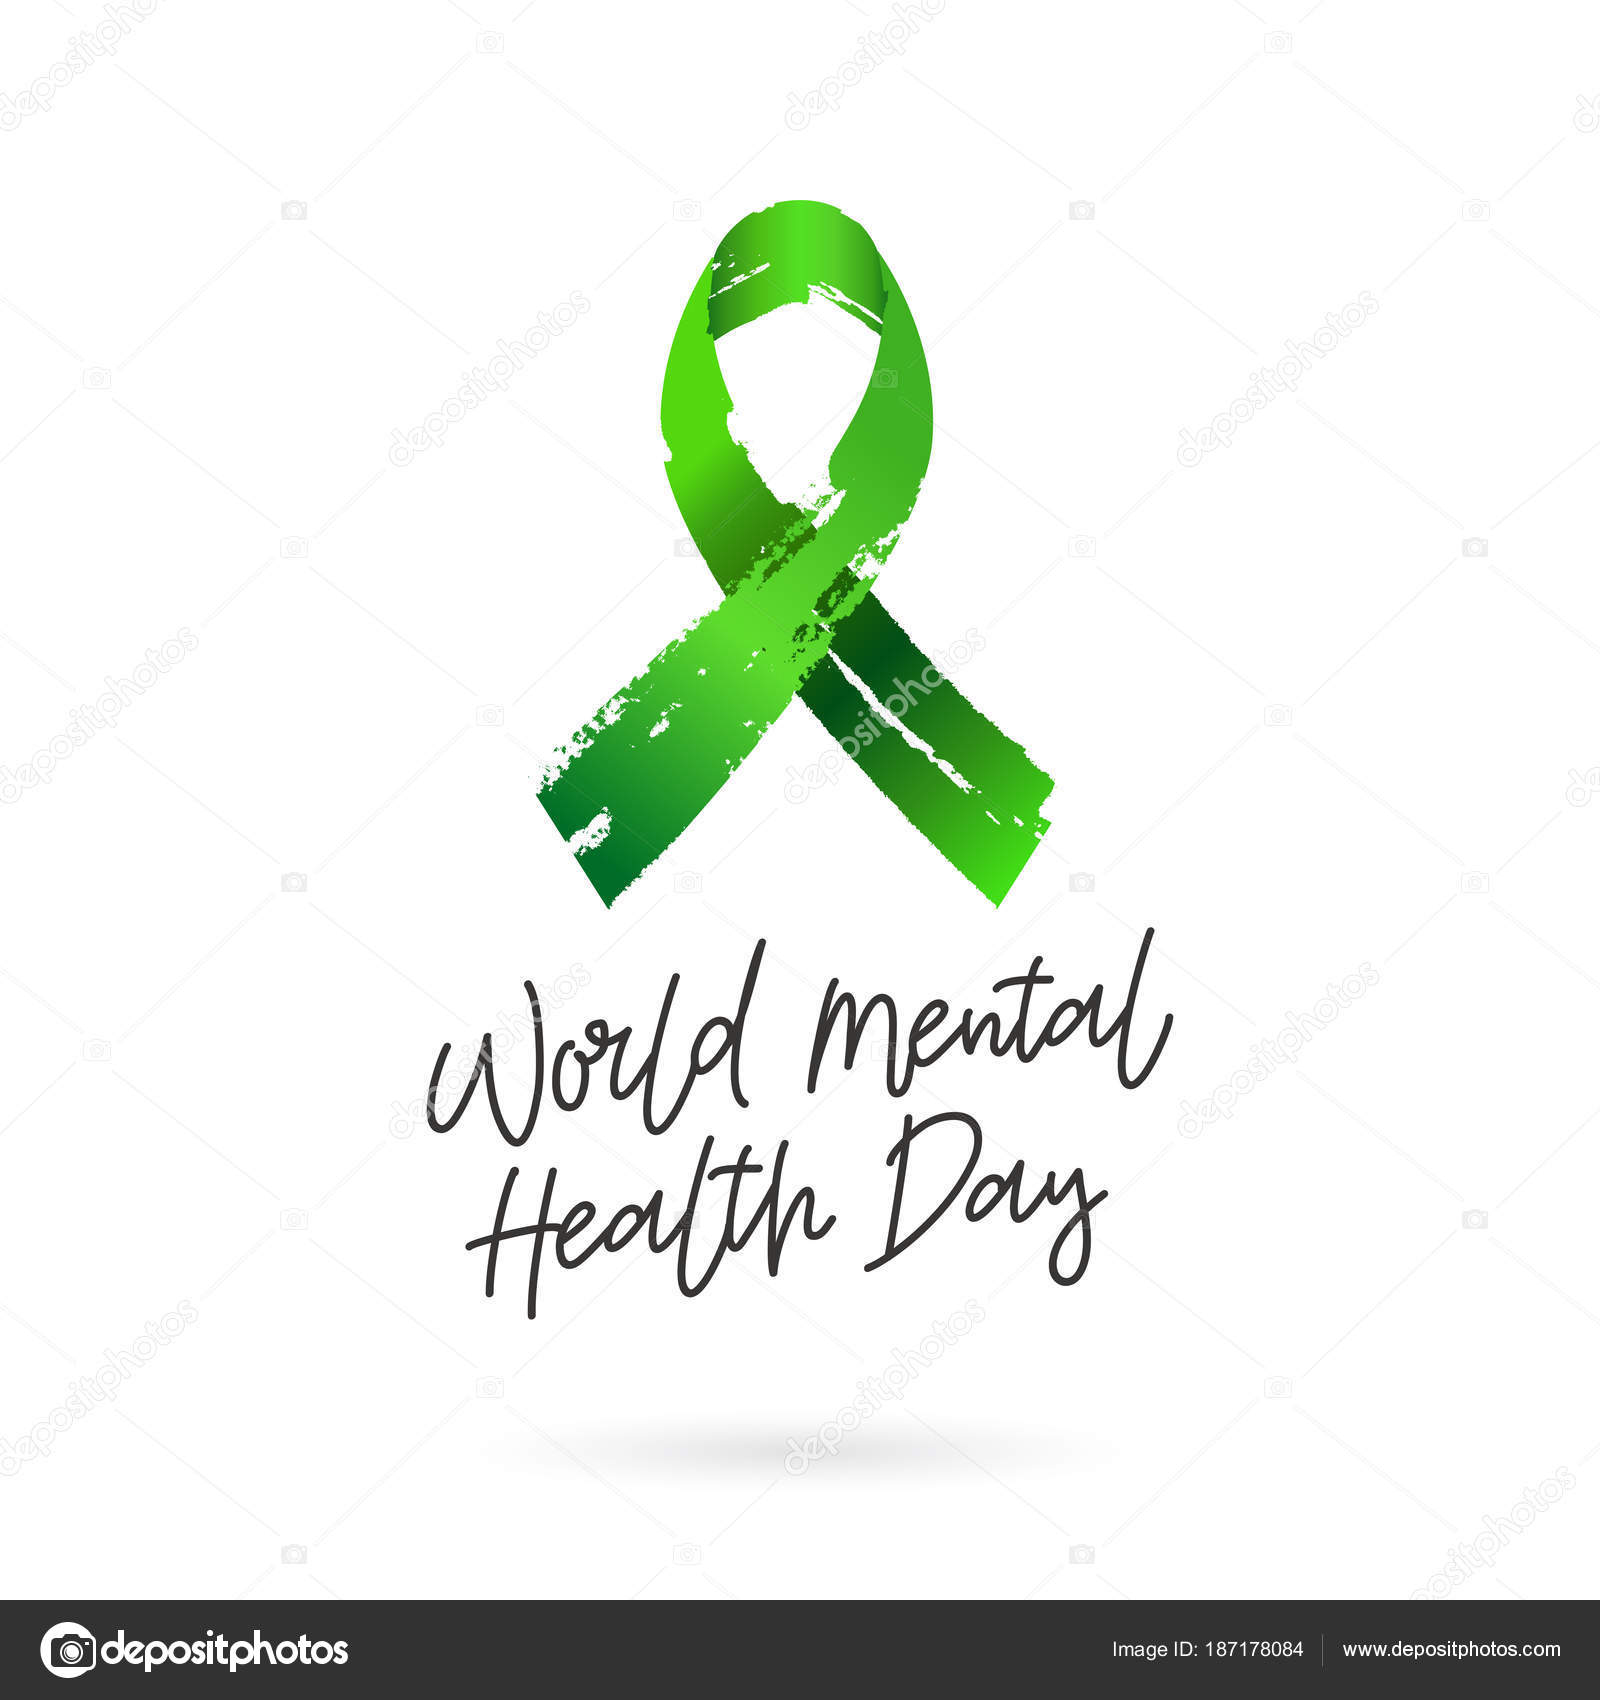 World Mental Health Day Green Ribbon From Brush Strokes Vector Illustration On White Background Gift Card Lettering And Calligraphy By Chekat